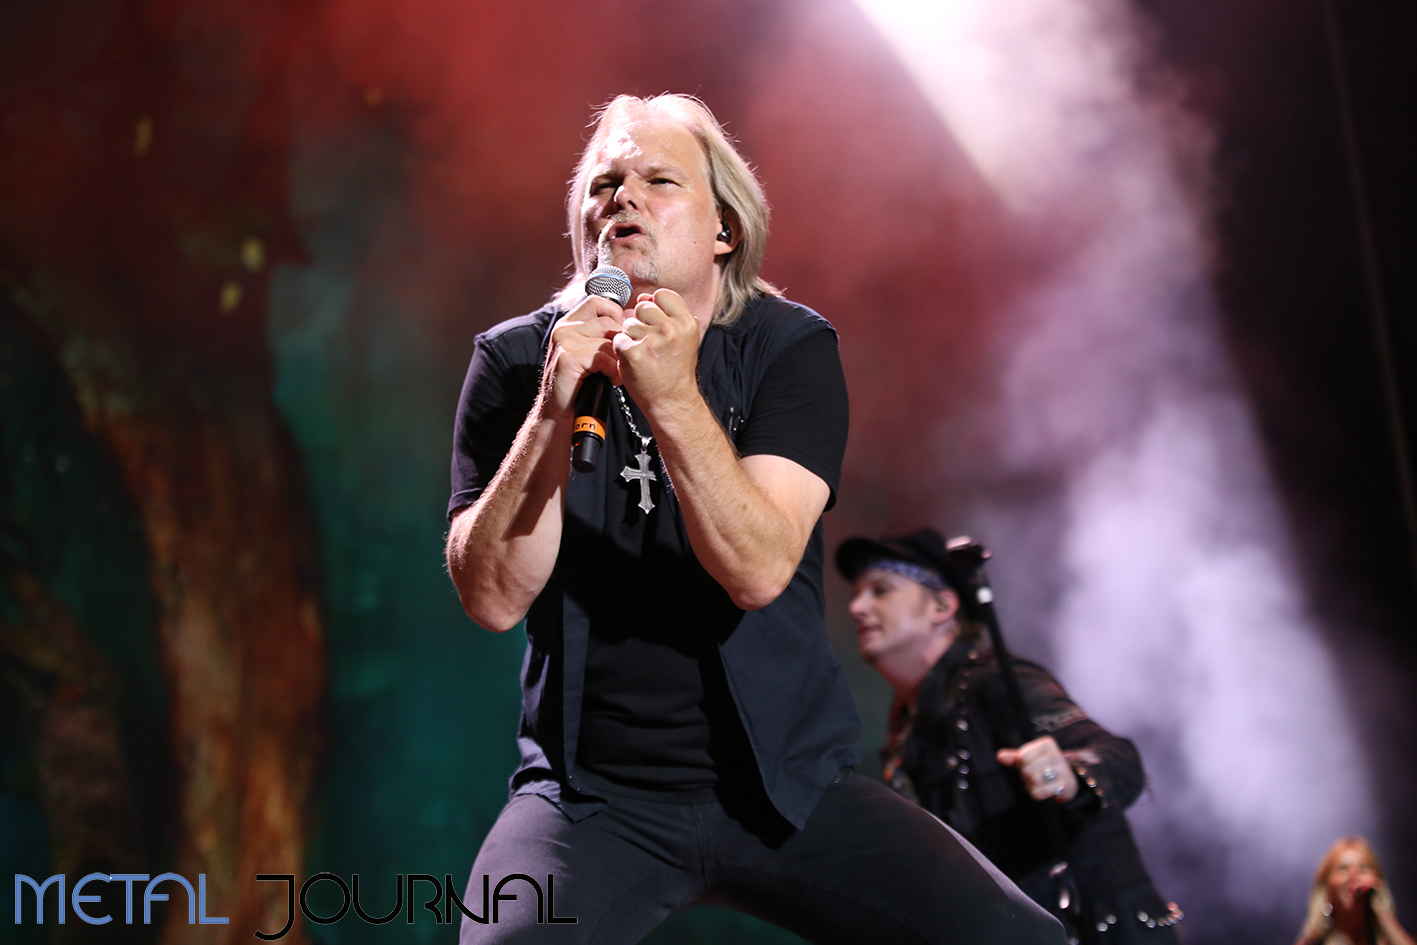 avantasia- leyendas del rock 2019 metal journal pic 4